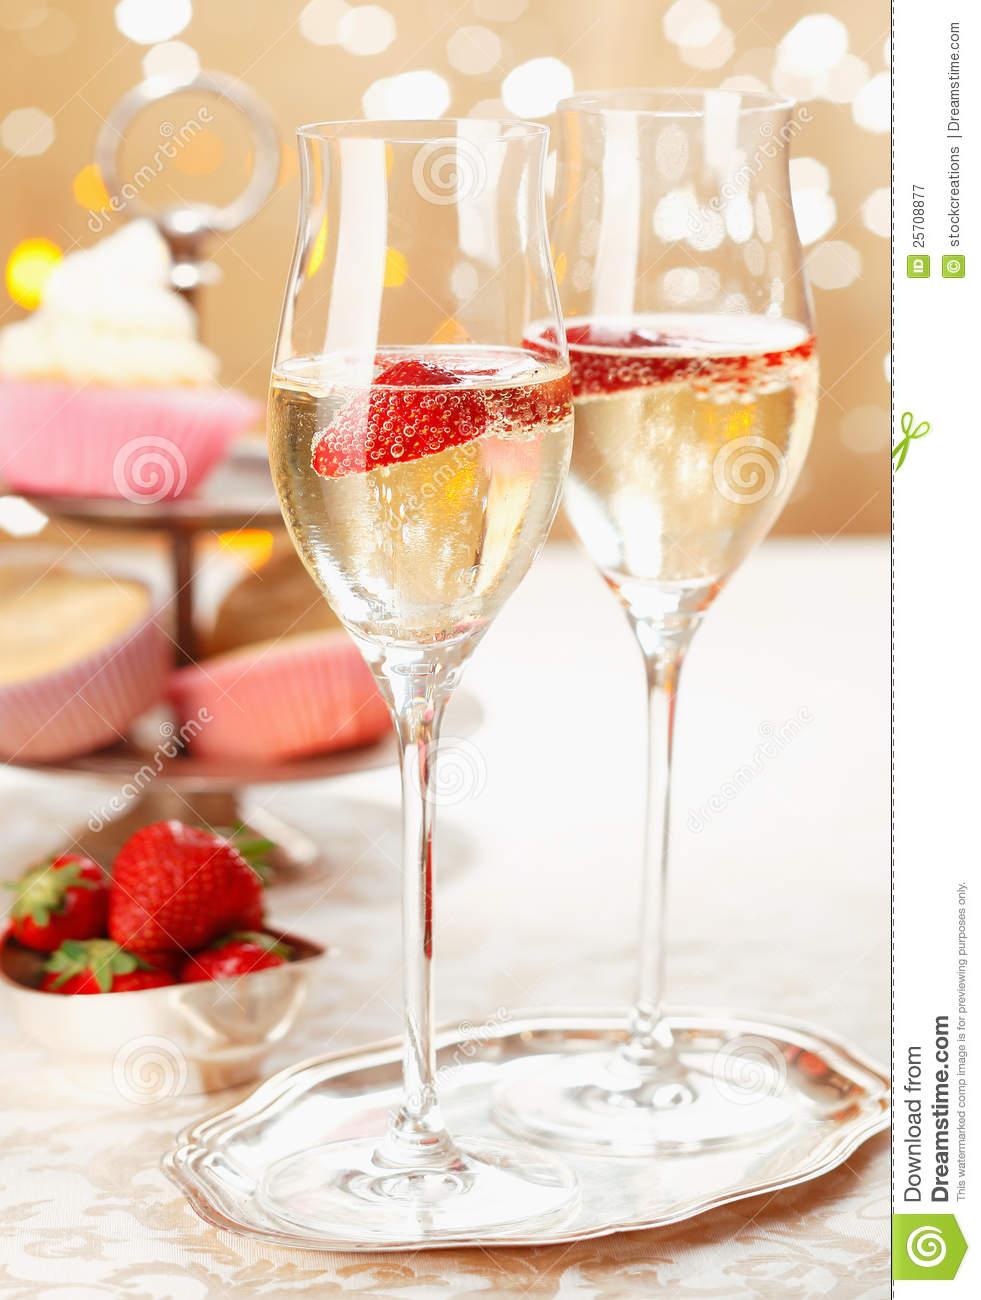 Romantic Champagne And Strawberries Stock Image Image